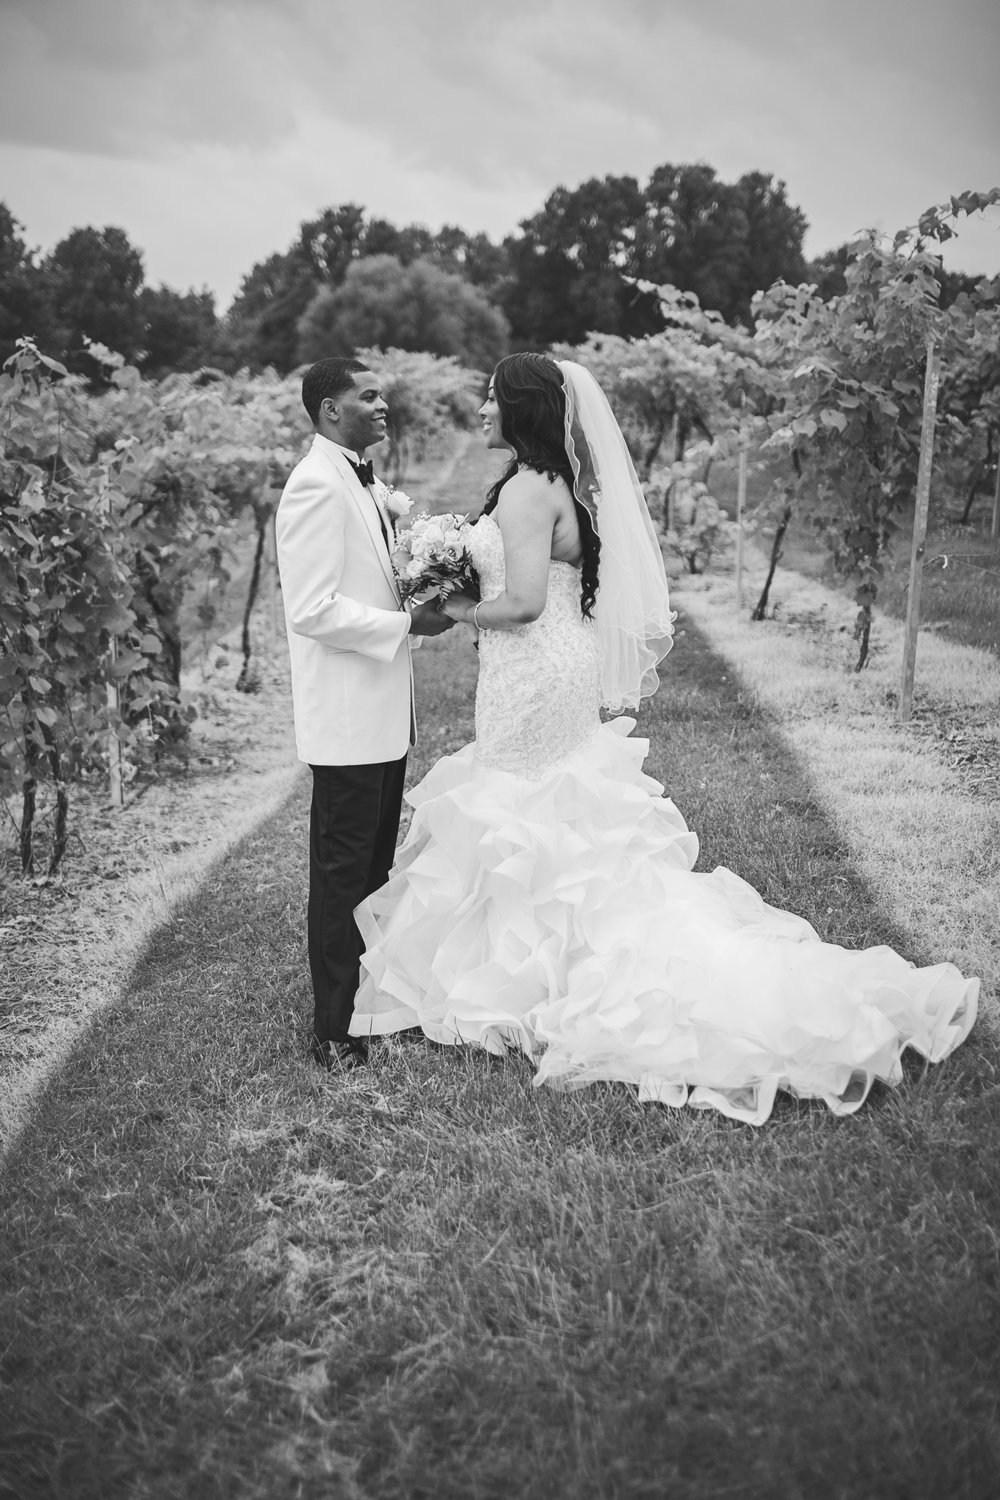 The reception was held at  Crown Winery  in Humboldt, Tennessee. I may have went a little MUCH on sharing these images from the portrait session, but they were just TOO GOOD to leave behind!